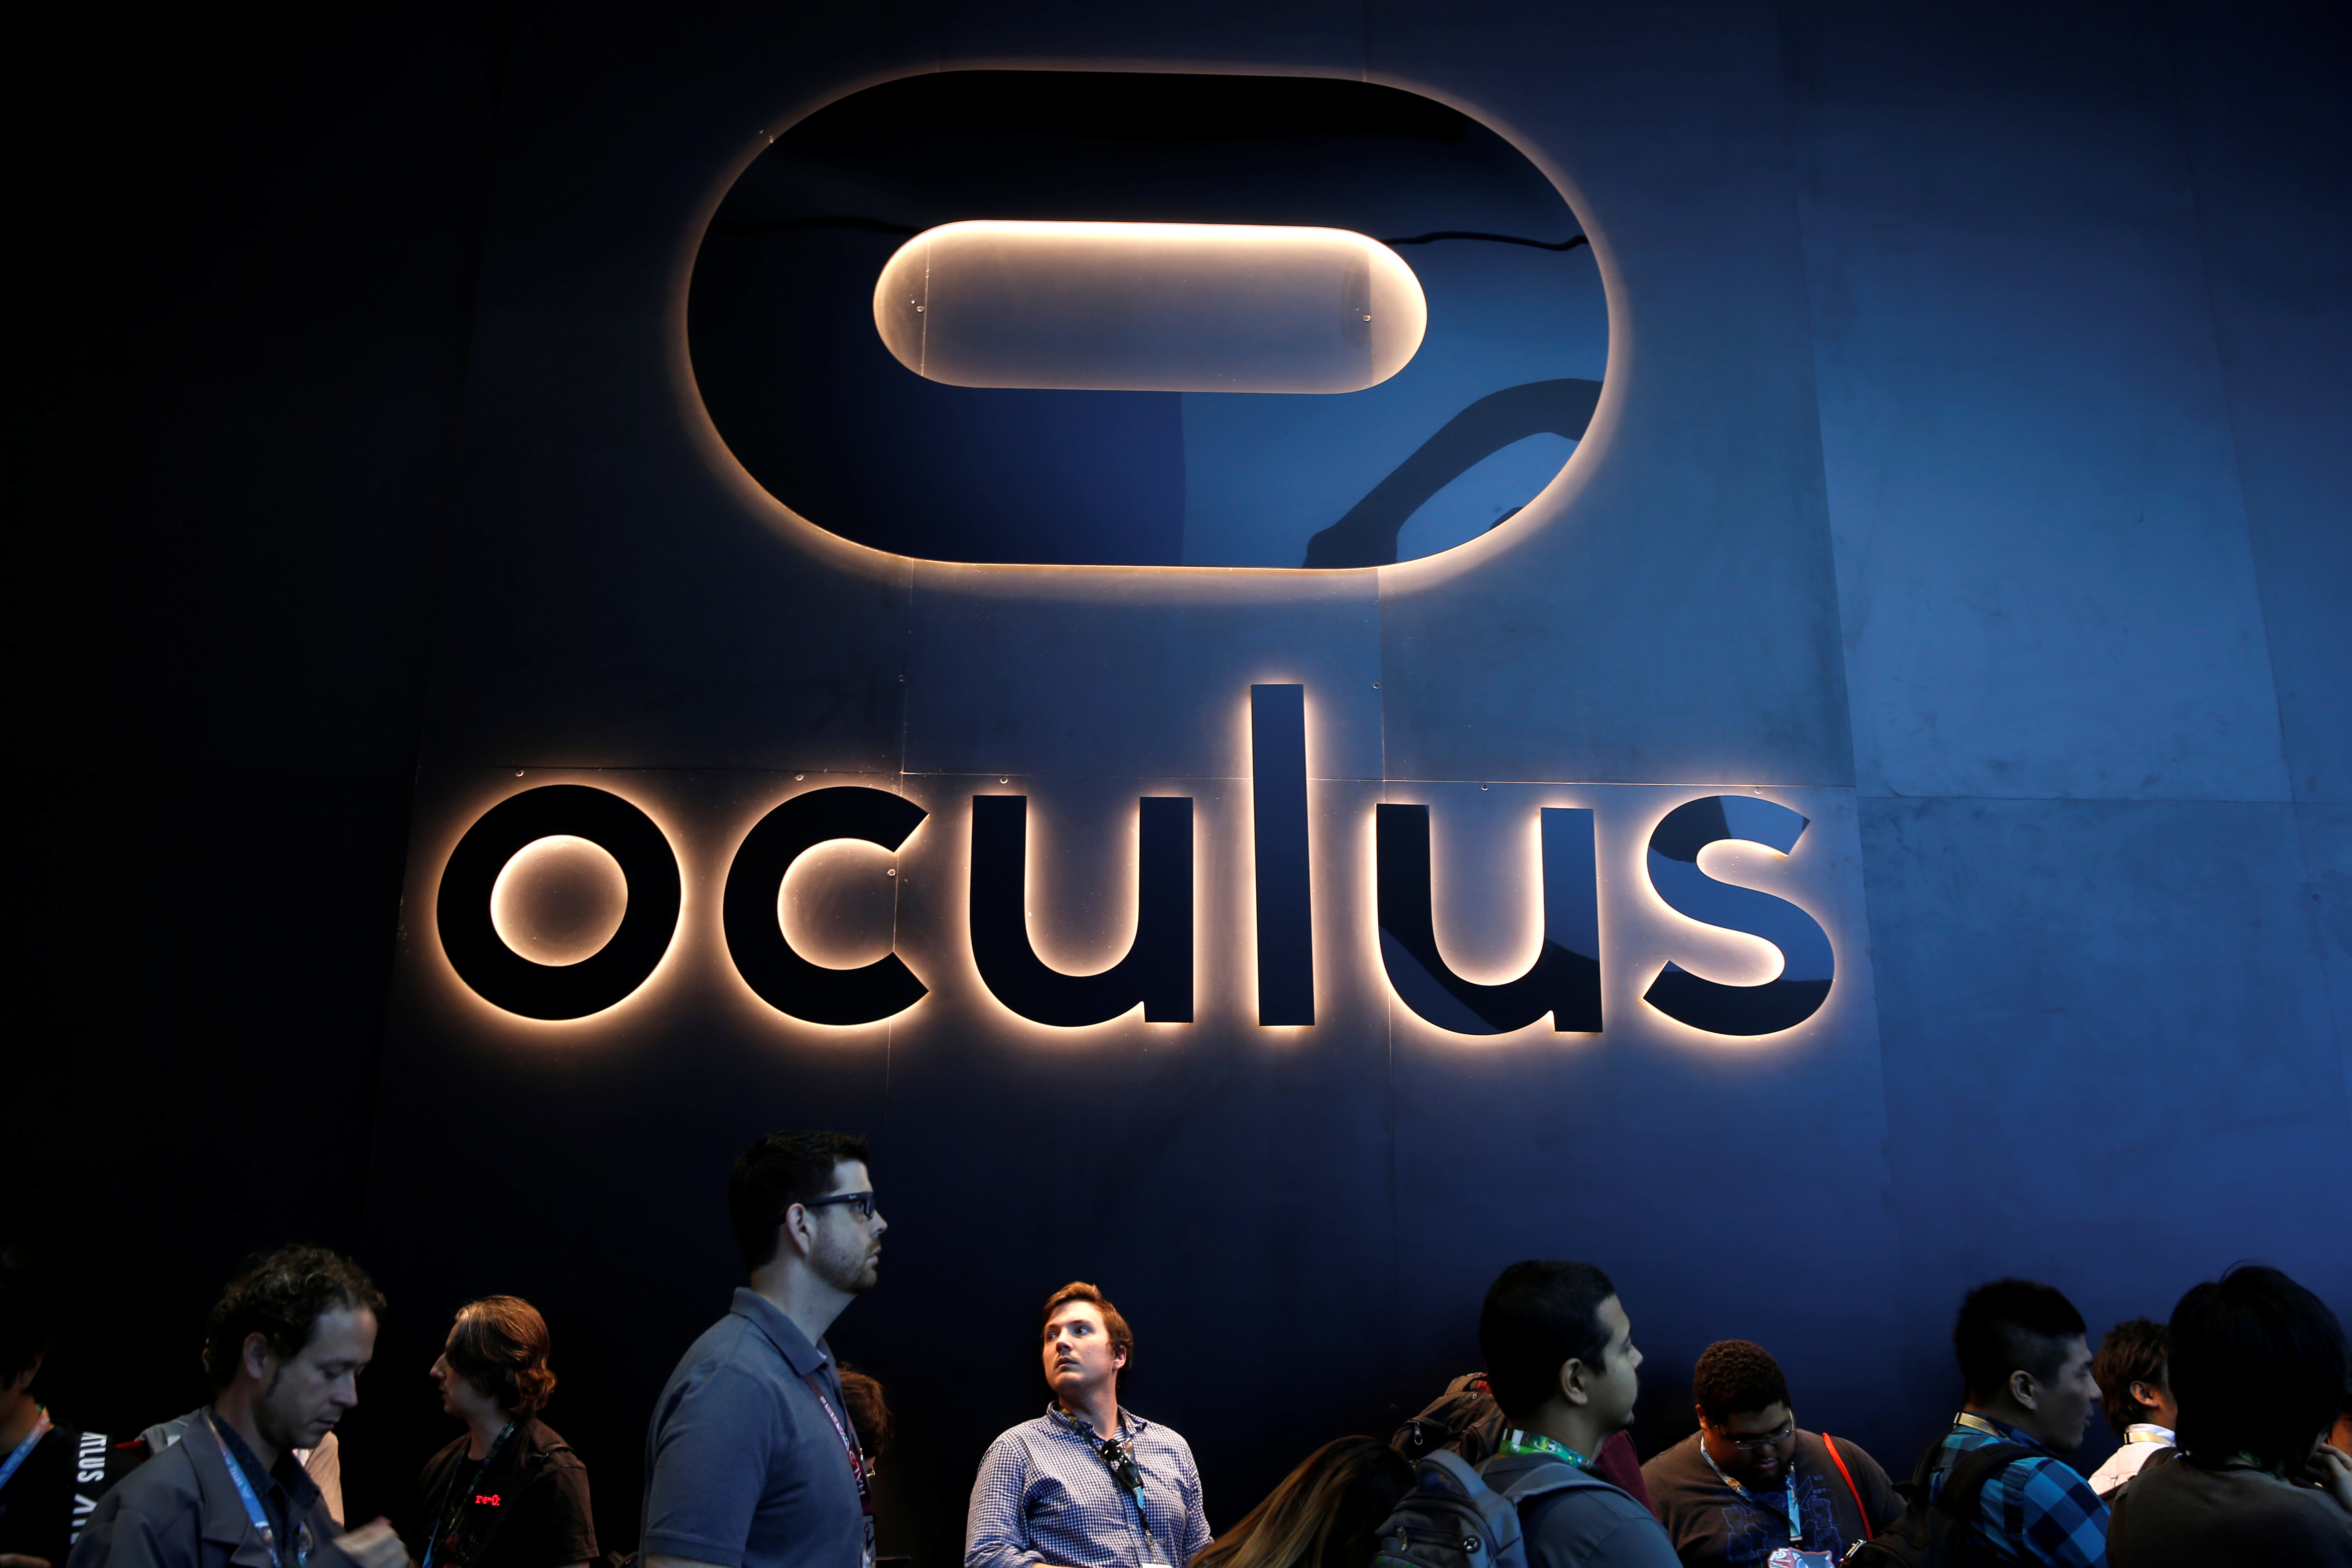 People line up at the Oculus booth at the E3 Electronic Expo in Los Angeles, California, U.S. June 14, 2016. REUTERS/Lucy Nicholson - S1AETJYAZJAB